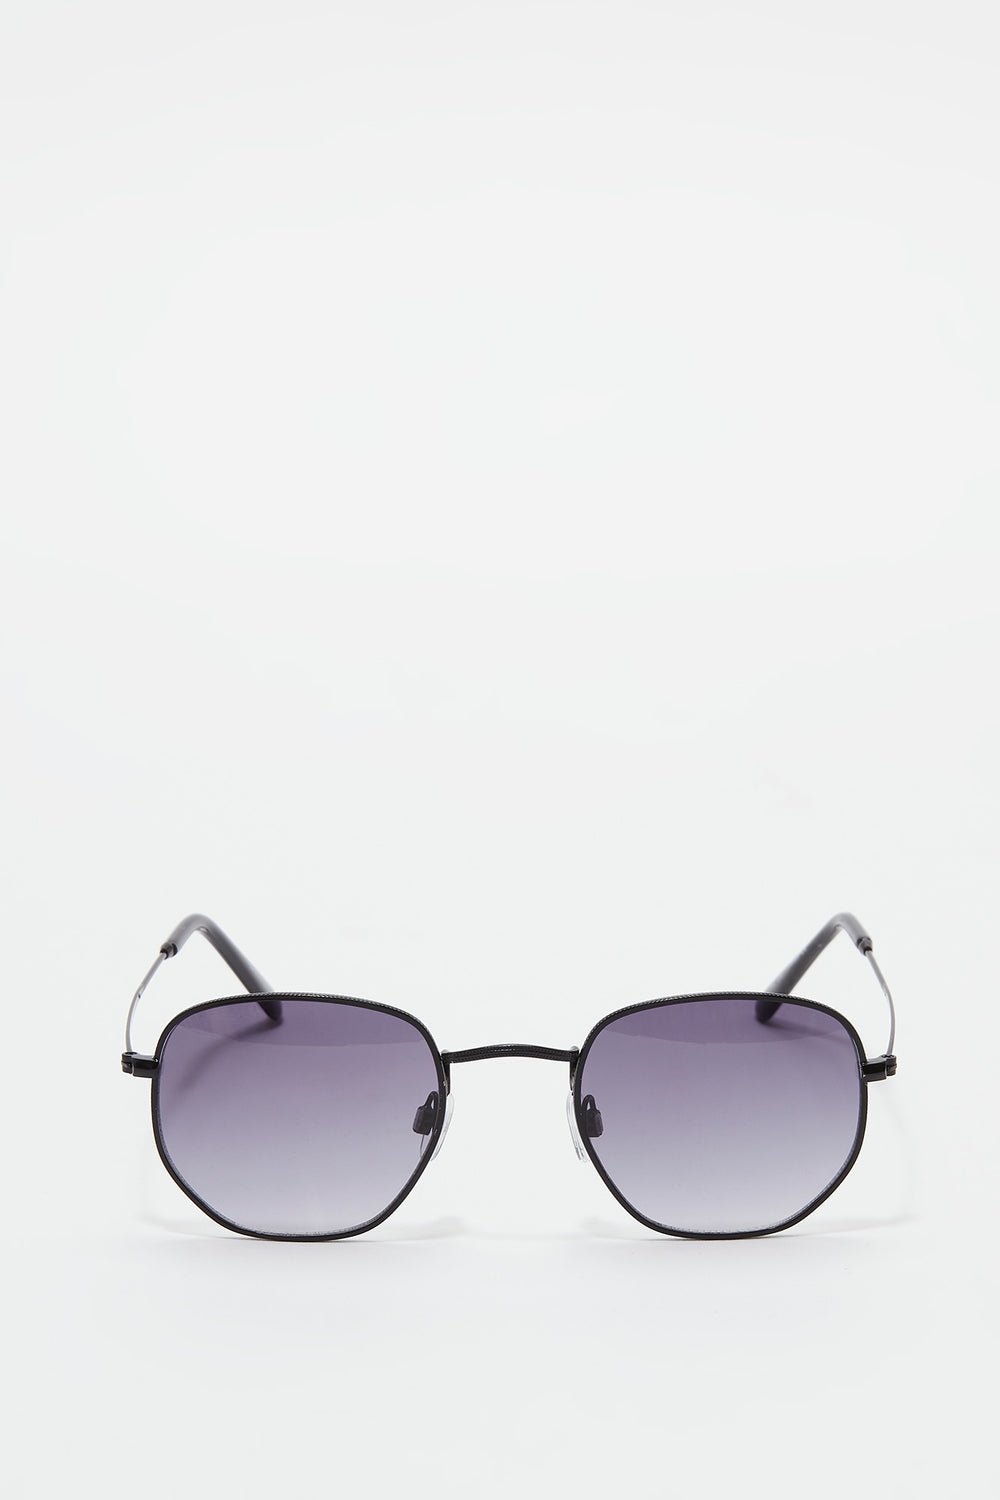 Metal Geo Square Sunglasses Black